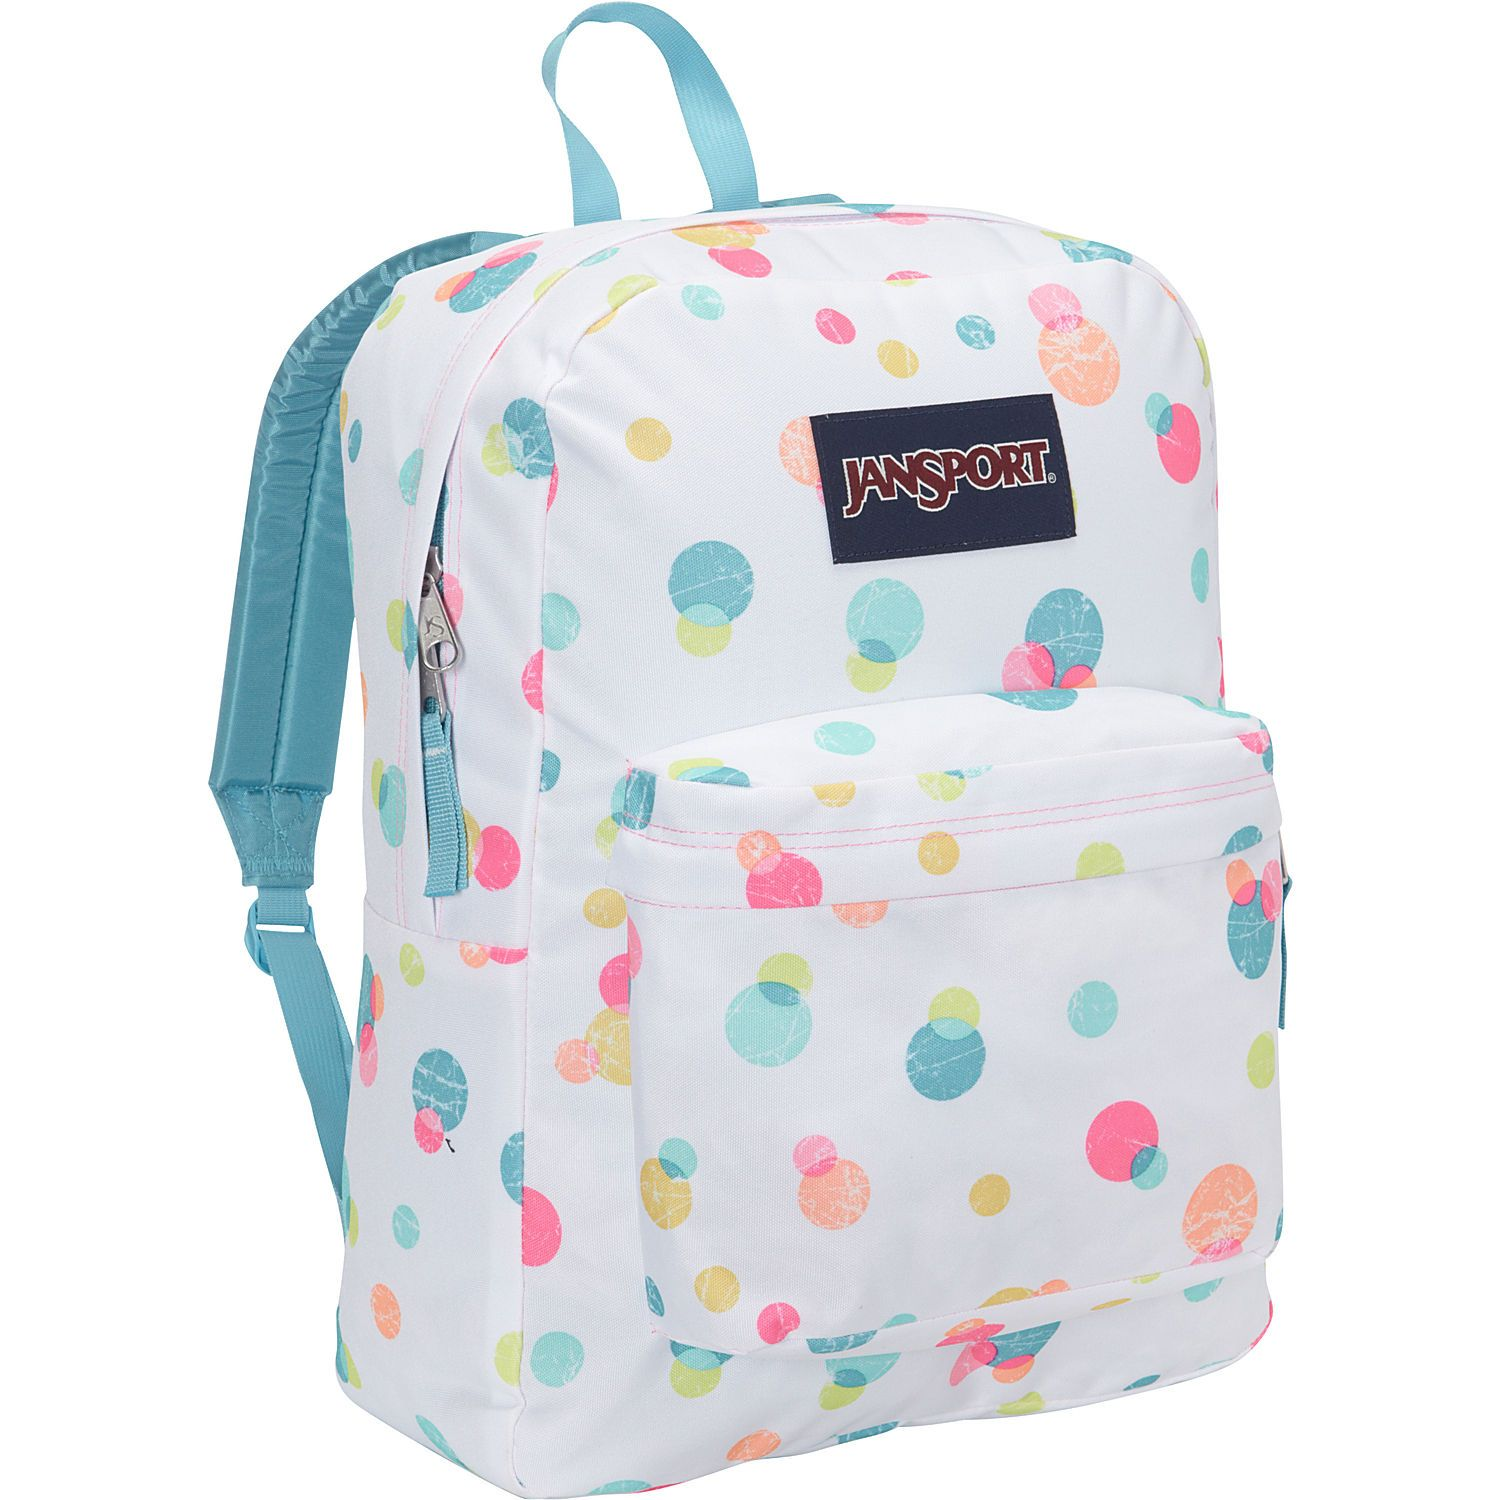 JanSport Superbreak Backpack - Free Shipping - eBags.com I Use ...